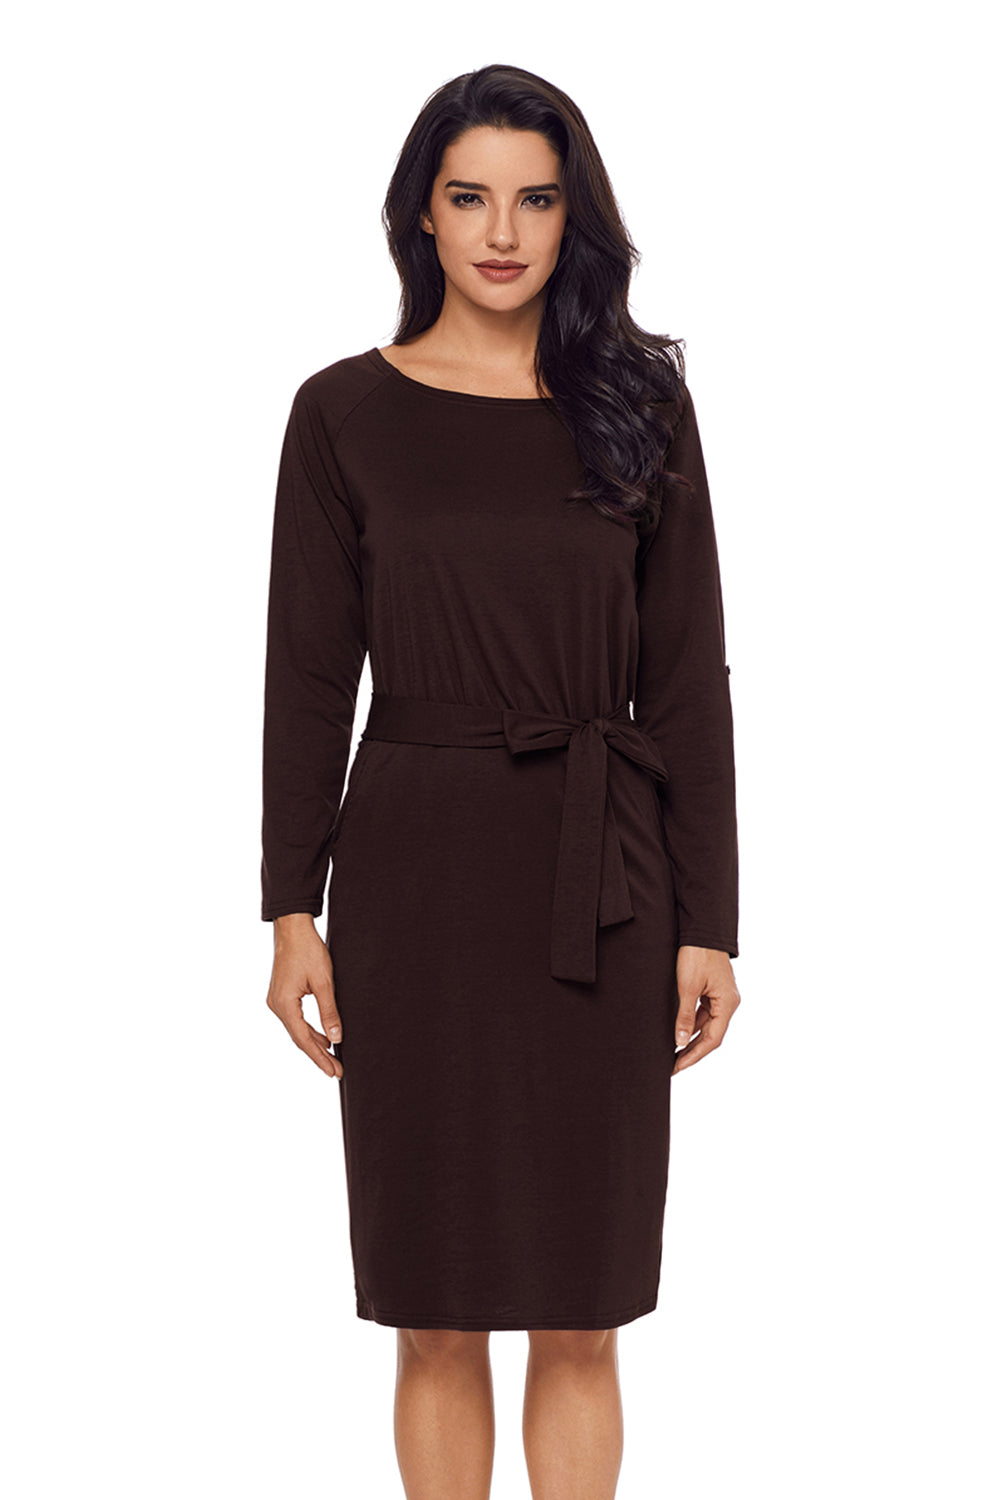 Her Fashion Black Roll-tab Long Sleeve Tie Waist Women Midi Dress